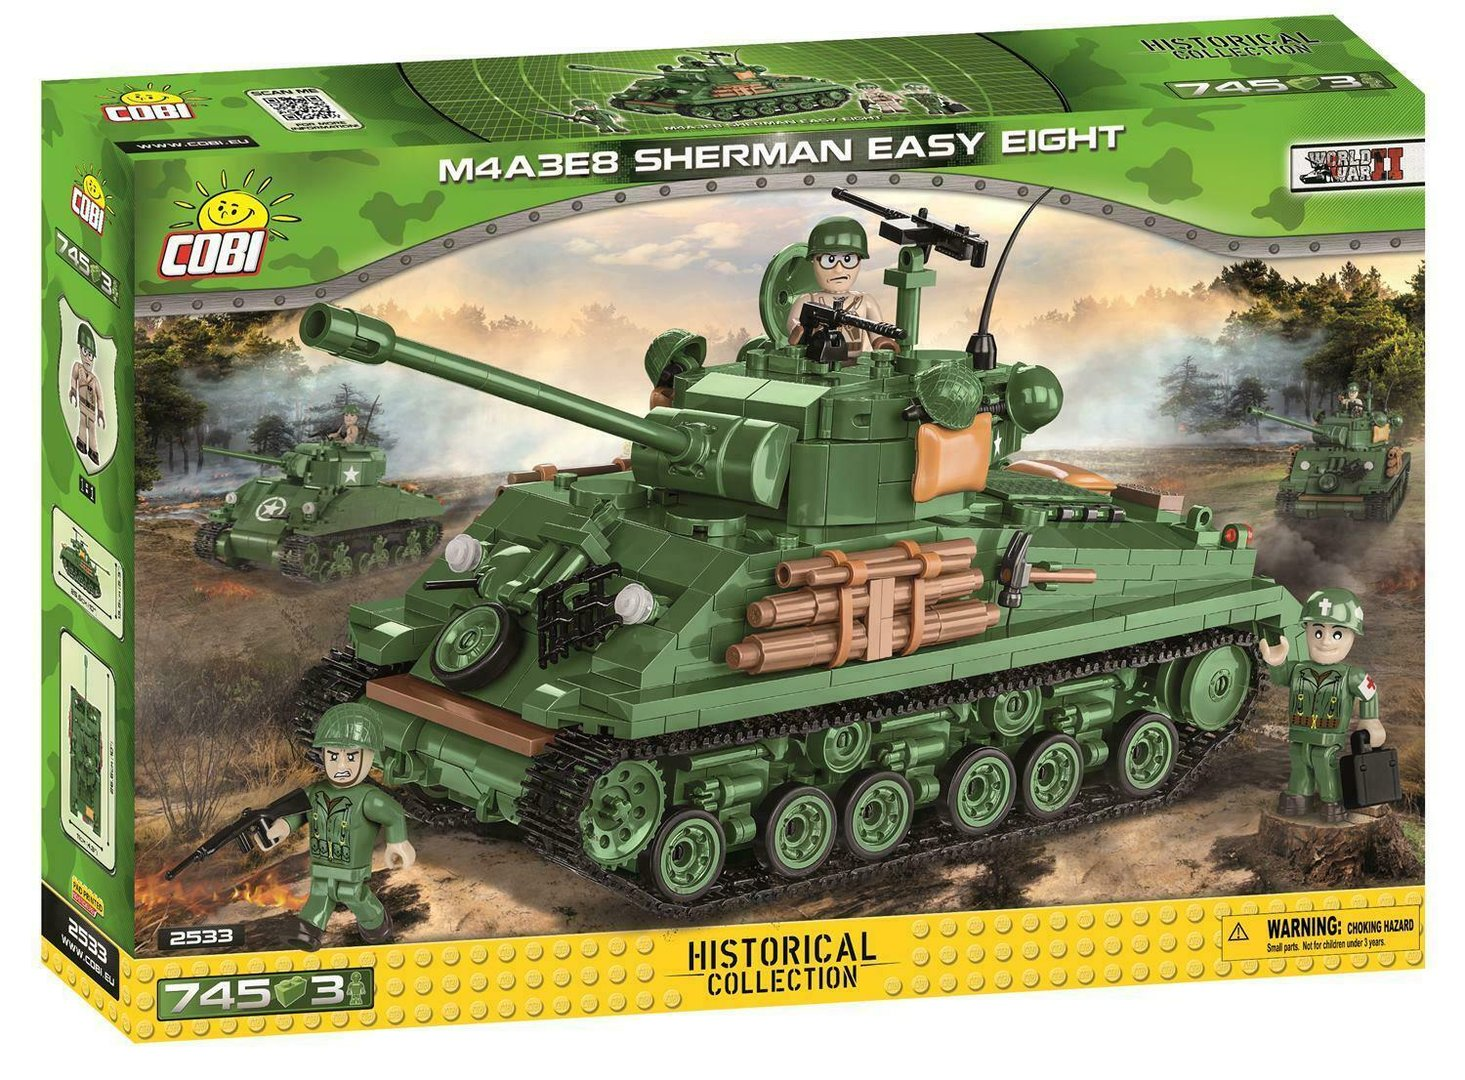 Cobi 2533 US-Panzer M4A3E8 Sherman Easy Eight - Pad Printed- (Historical Collection WWII)